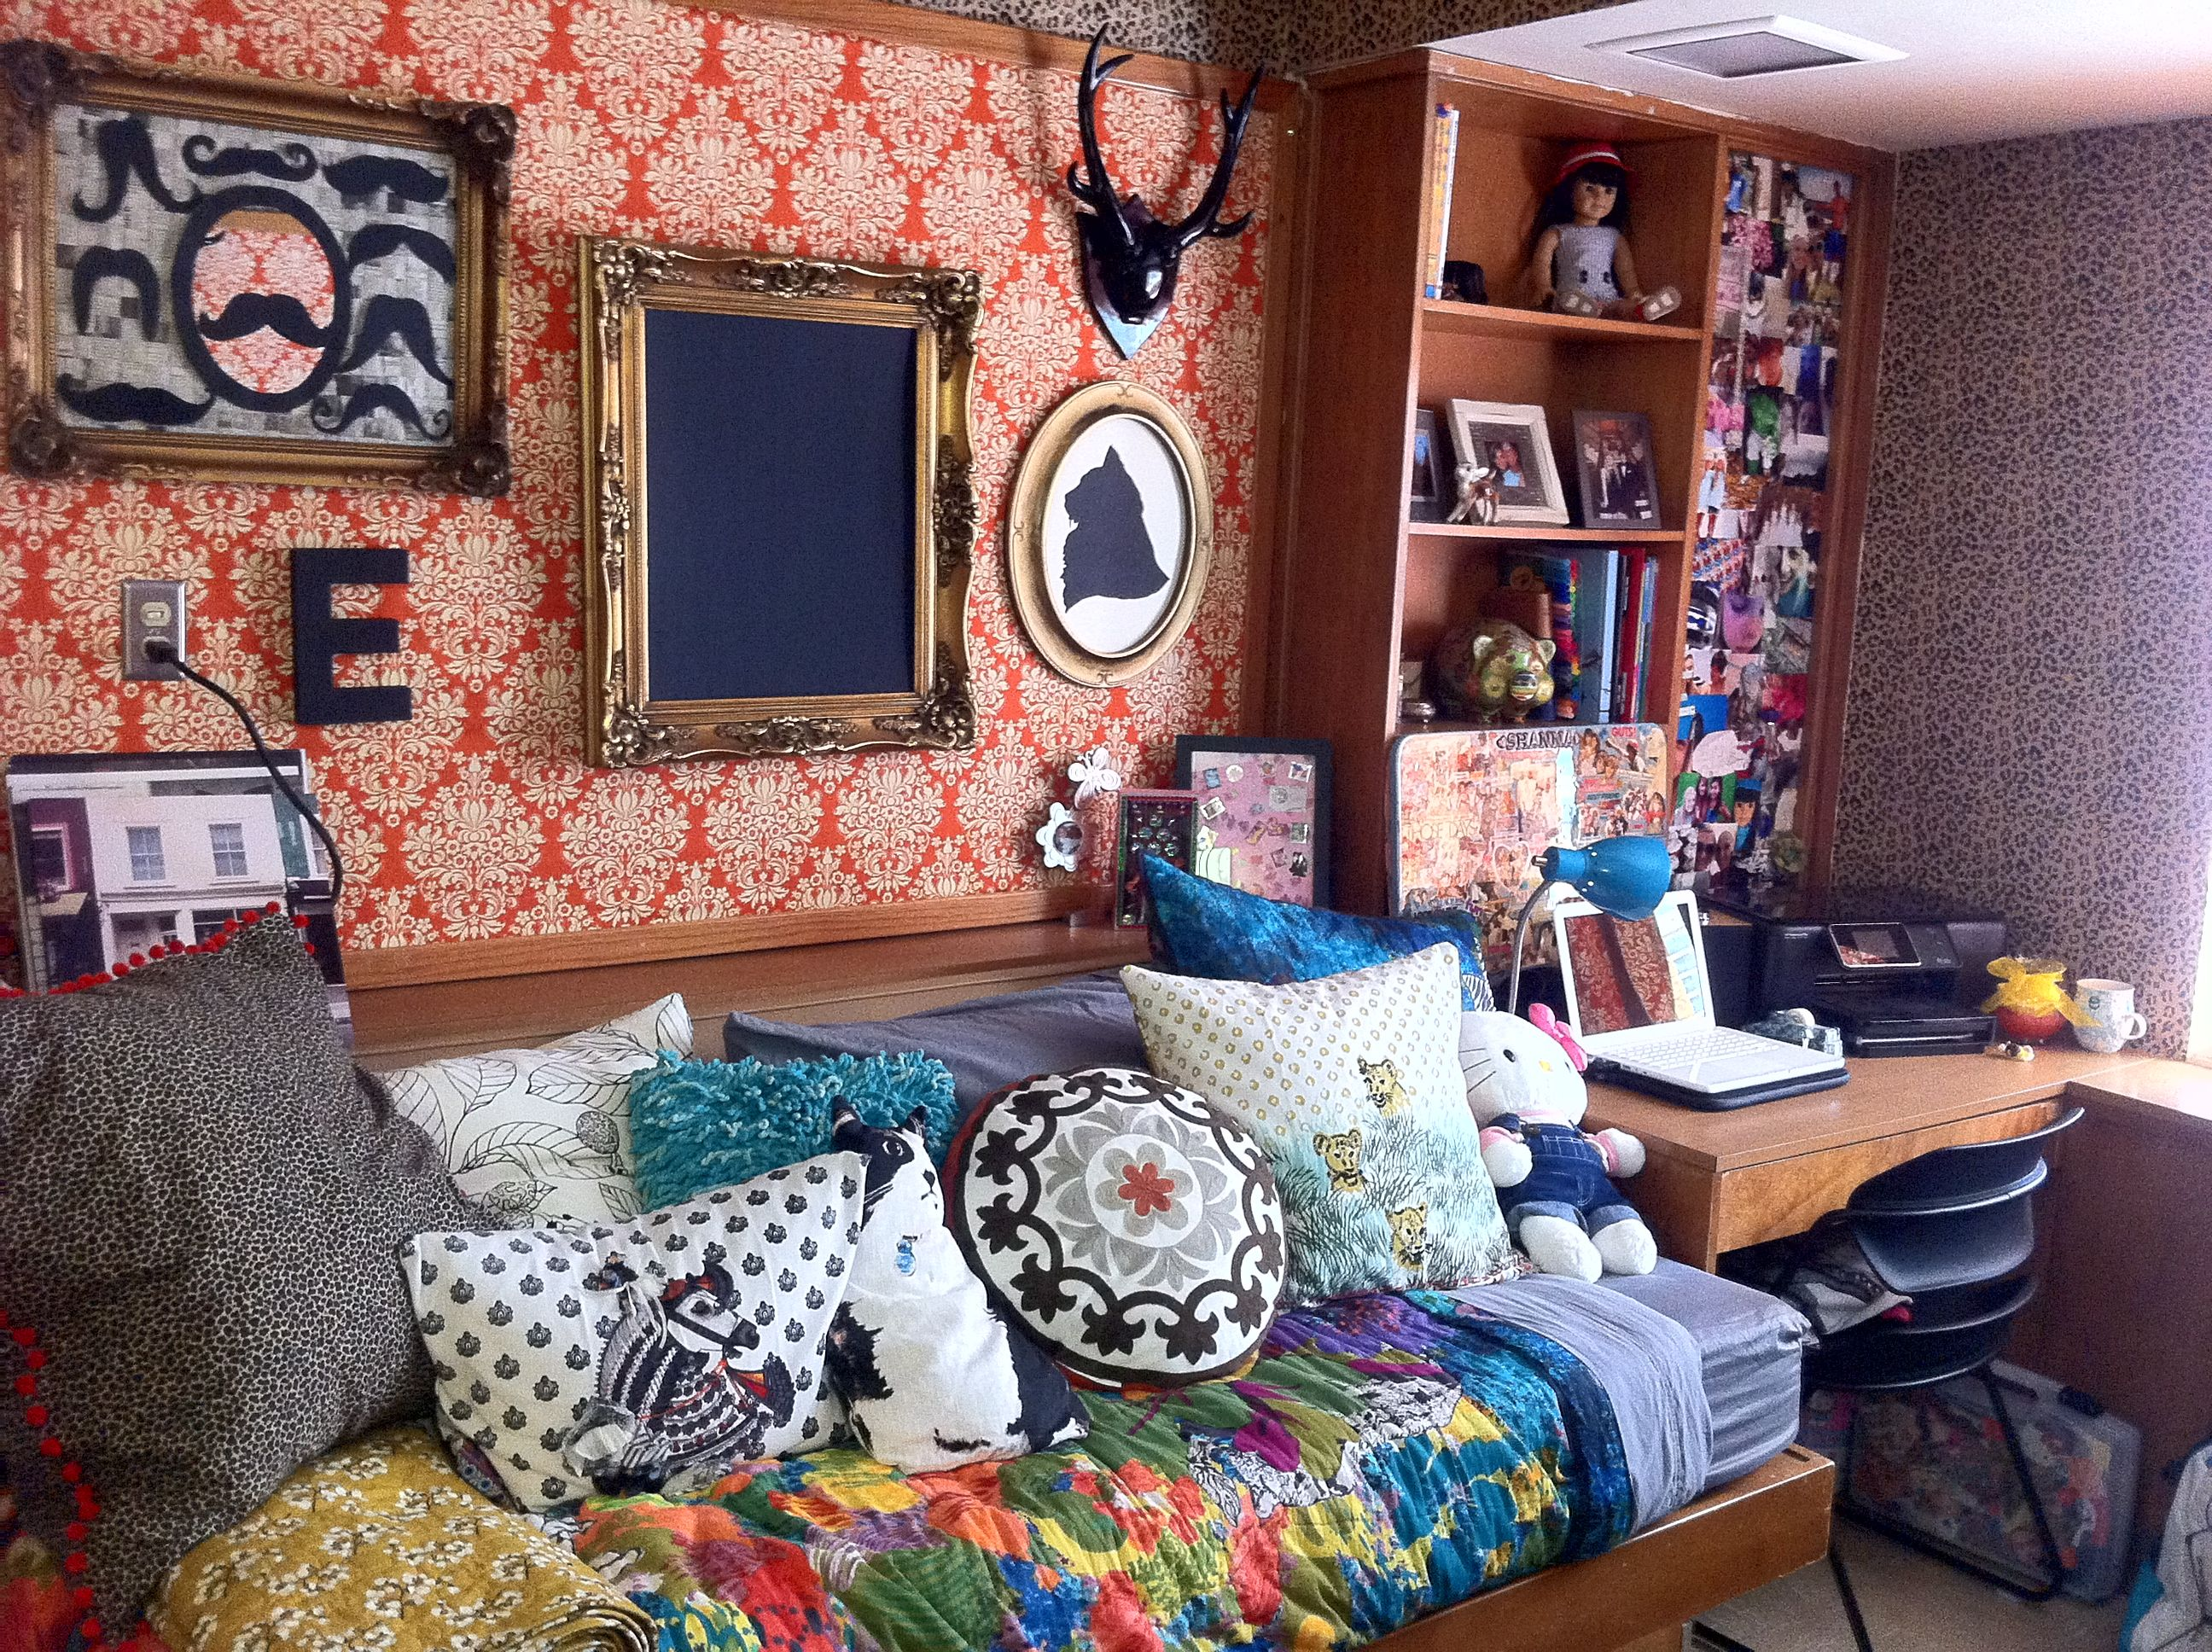 42 best texas tech dorm ideas images on pinterest texas tech view of my side of last years dorm at 213 wall hall texas tech